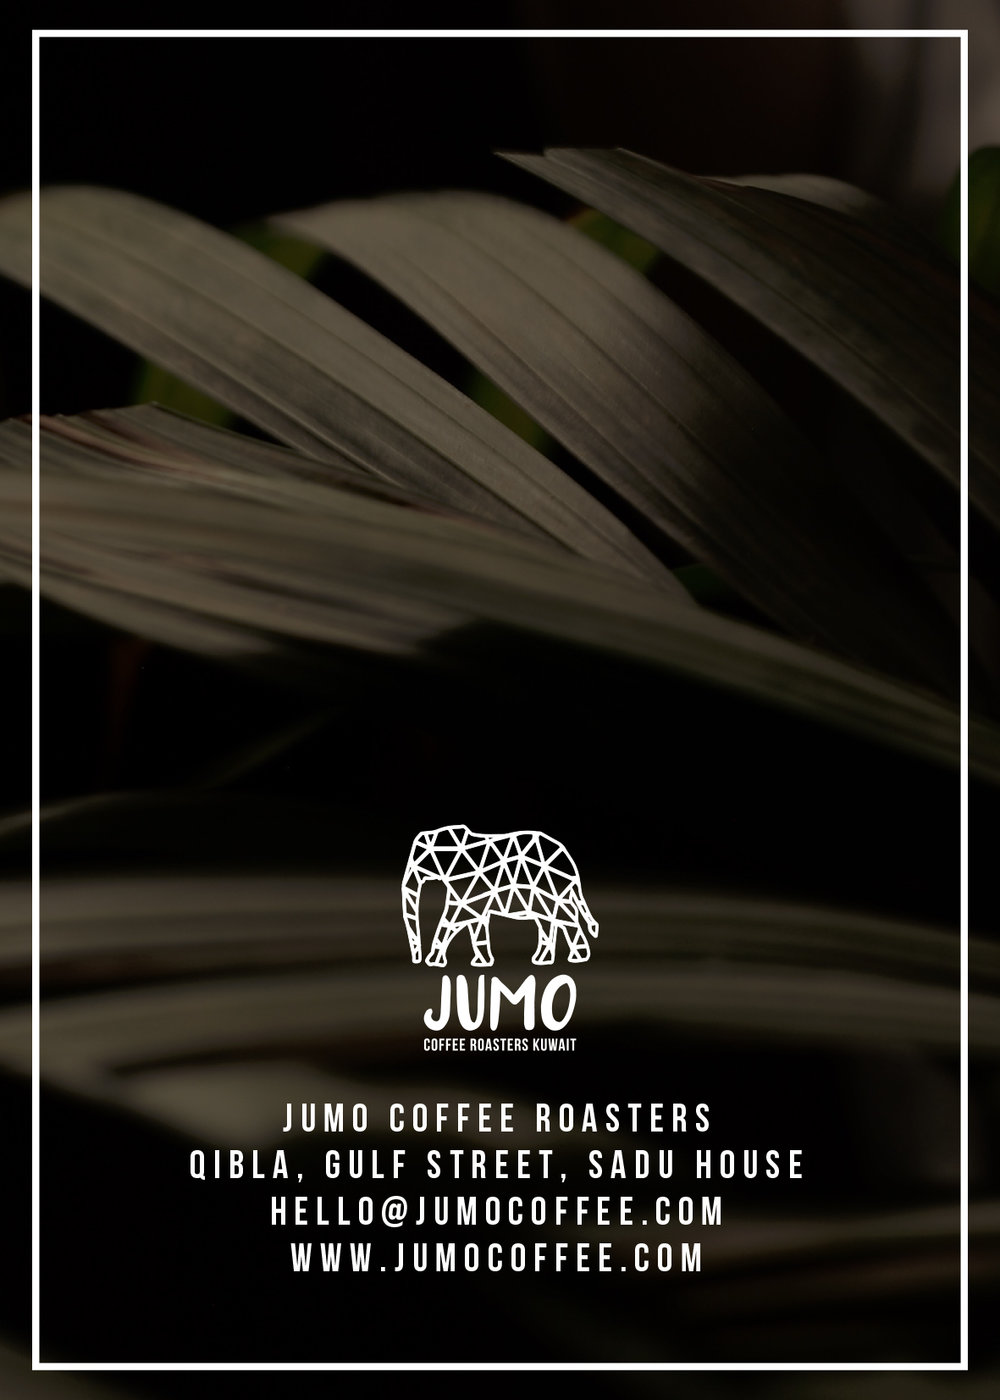 JUMO_COFFEE_BOOKLET New-23.jpg